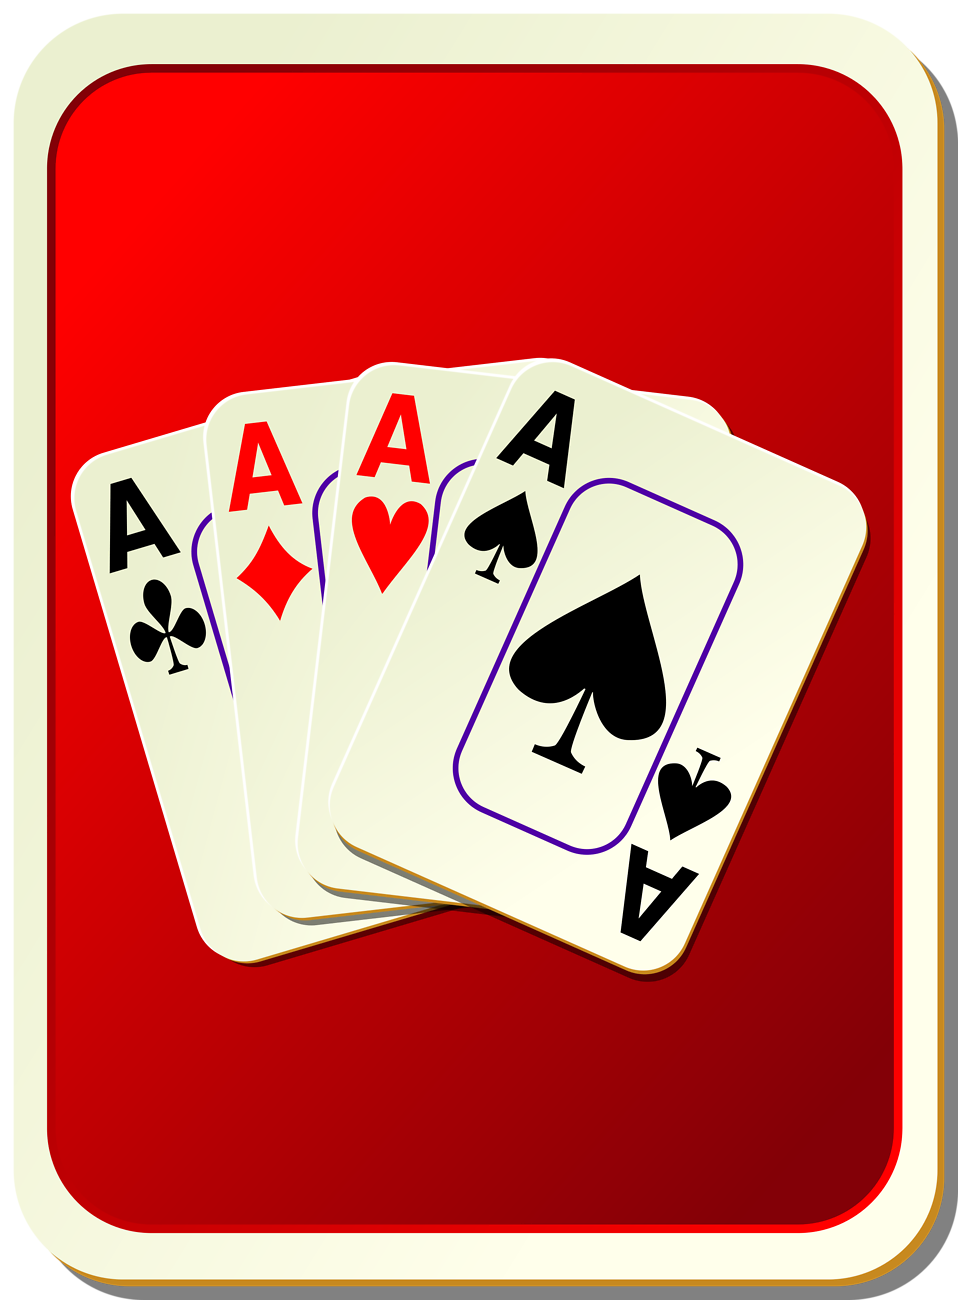 Playing Cards | Free Stock Photo | Illustration of a play ...